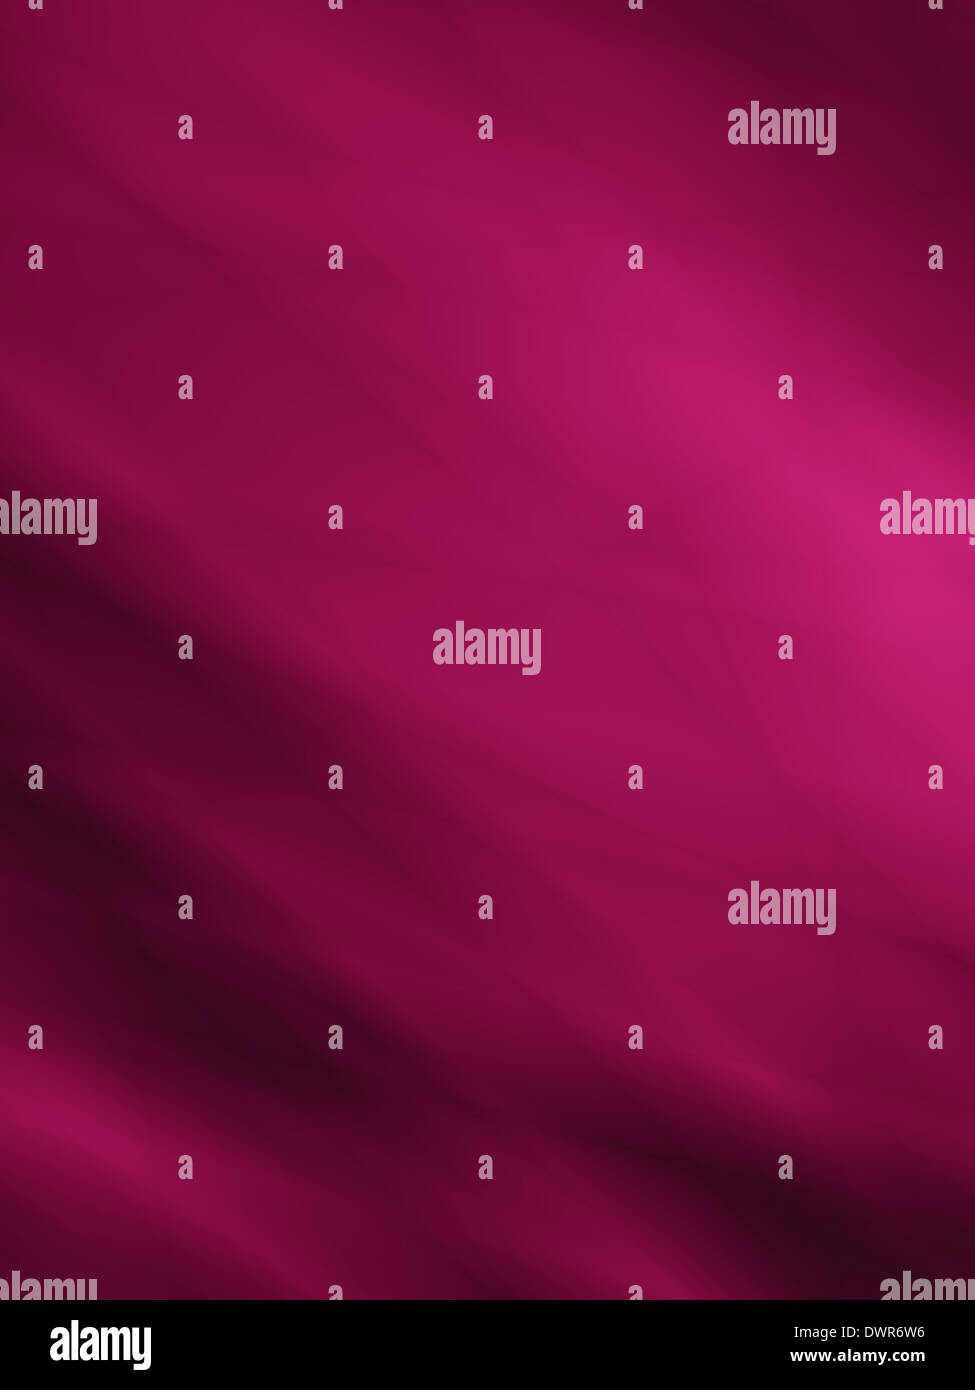 Dark Red Abstract Background Wallpaper Design Stock Photo Alamy